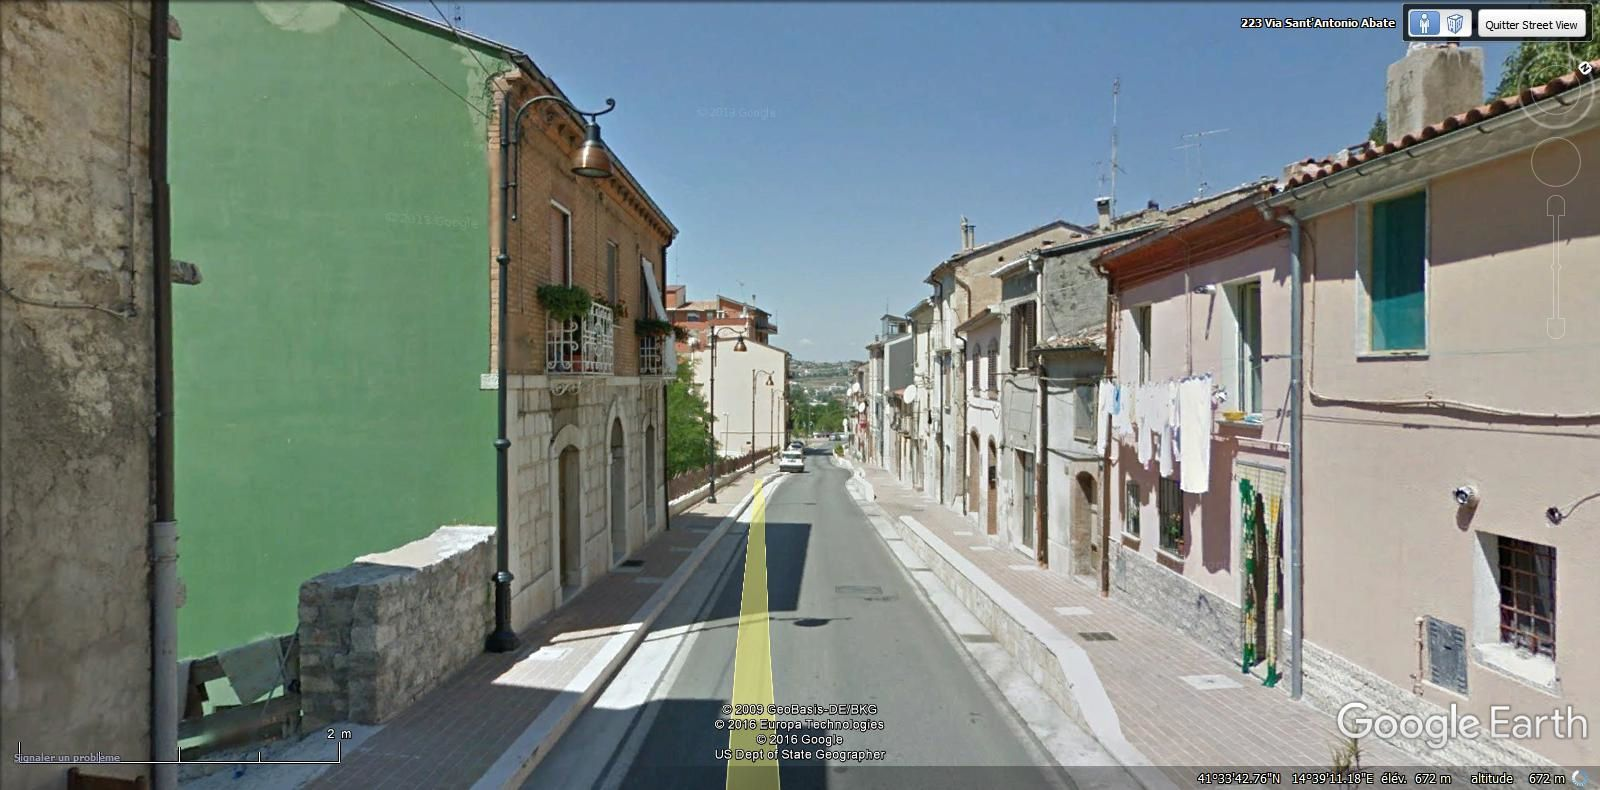 via Sant Antonio Abate